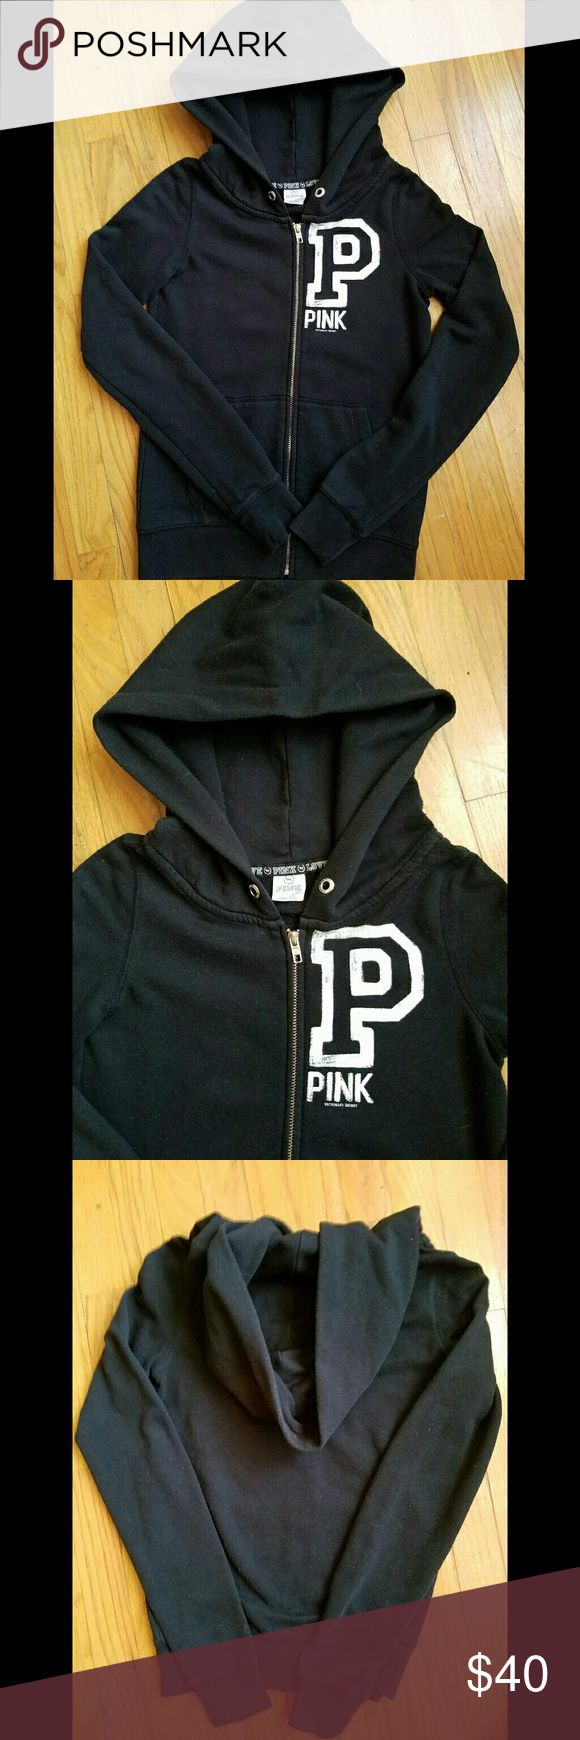 VS PINK Black zip up hoodie XS/S Victoria's Secret Pink black zip-up hoodie. In great condition..worn a few times! Super comfy & cute. Size XS however may fit a S as well PINK Victoria's Secret Tops Sweatshirts & Hoodies